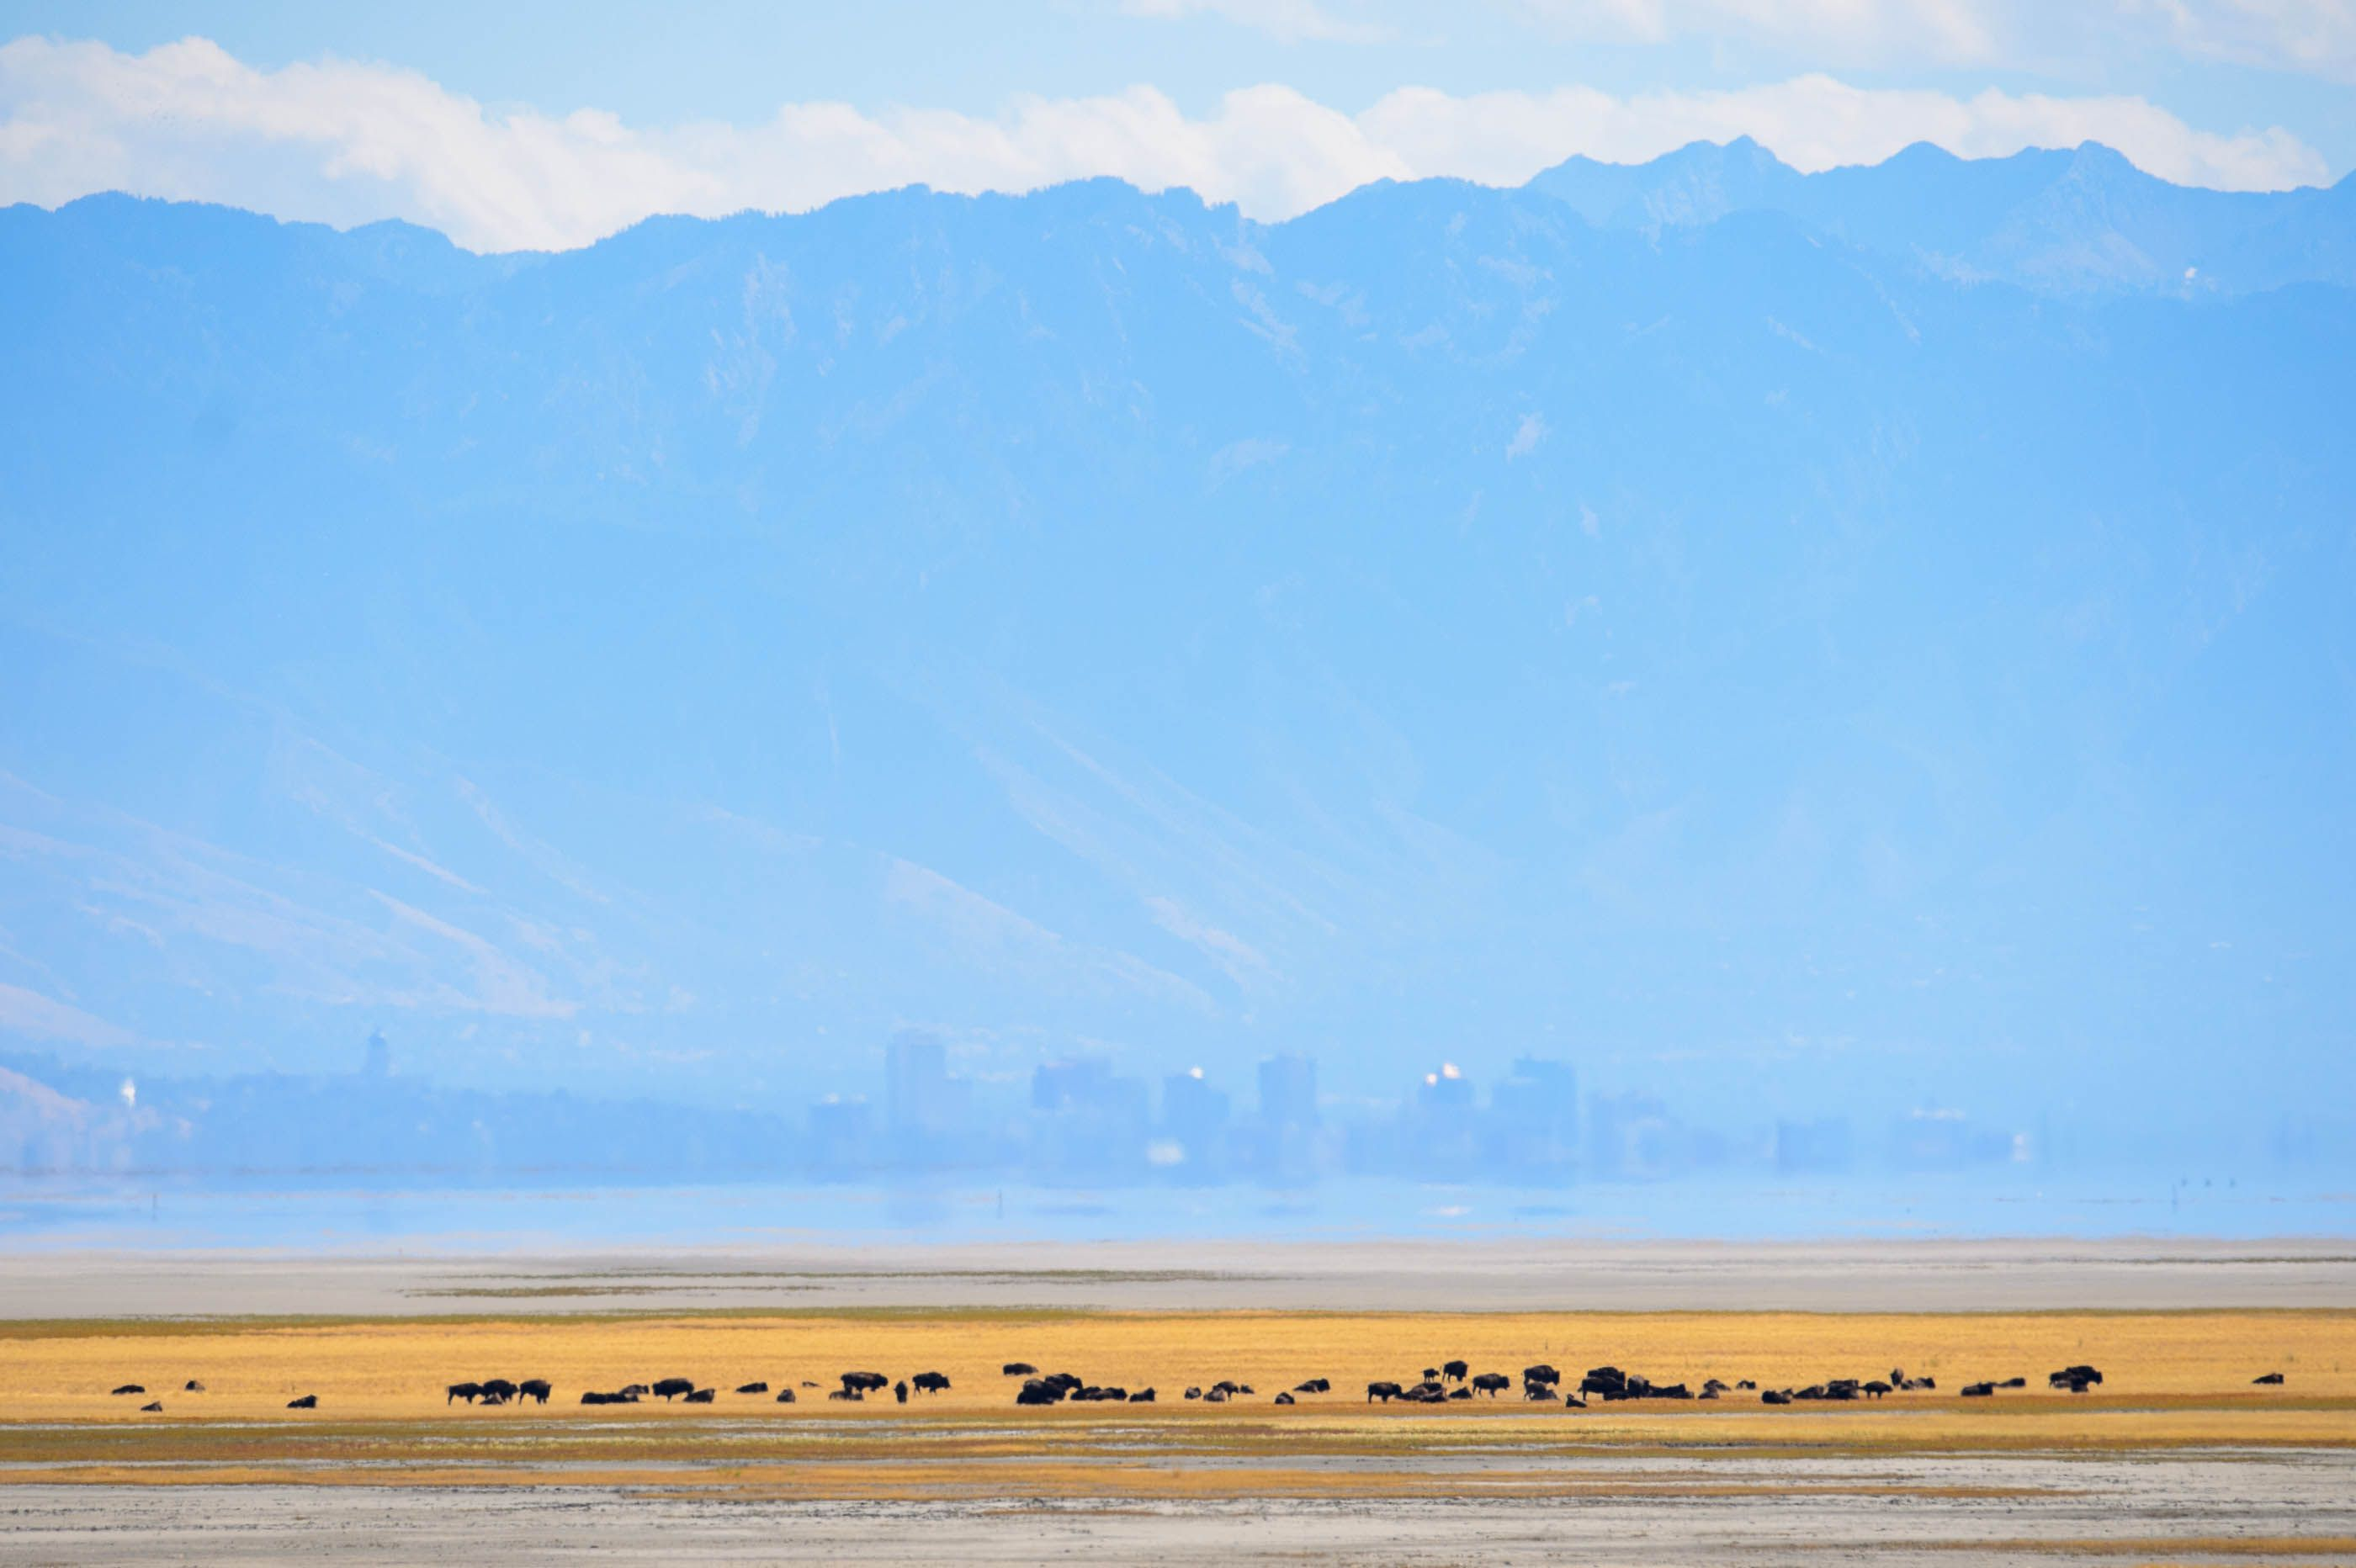 An island no more? State to put up fences to keep Antelope Island bison